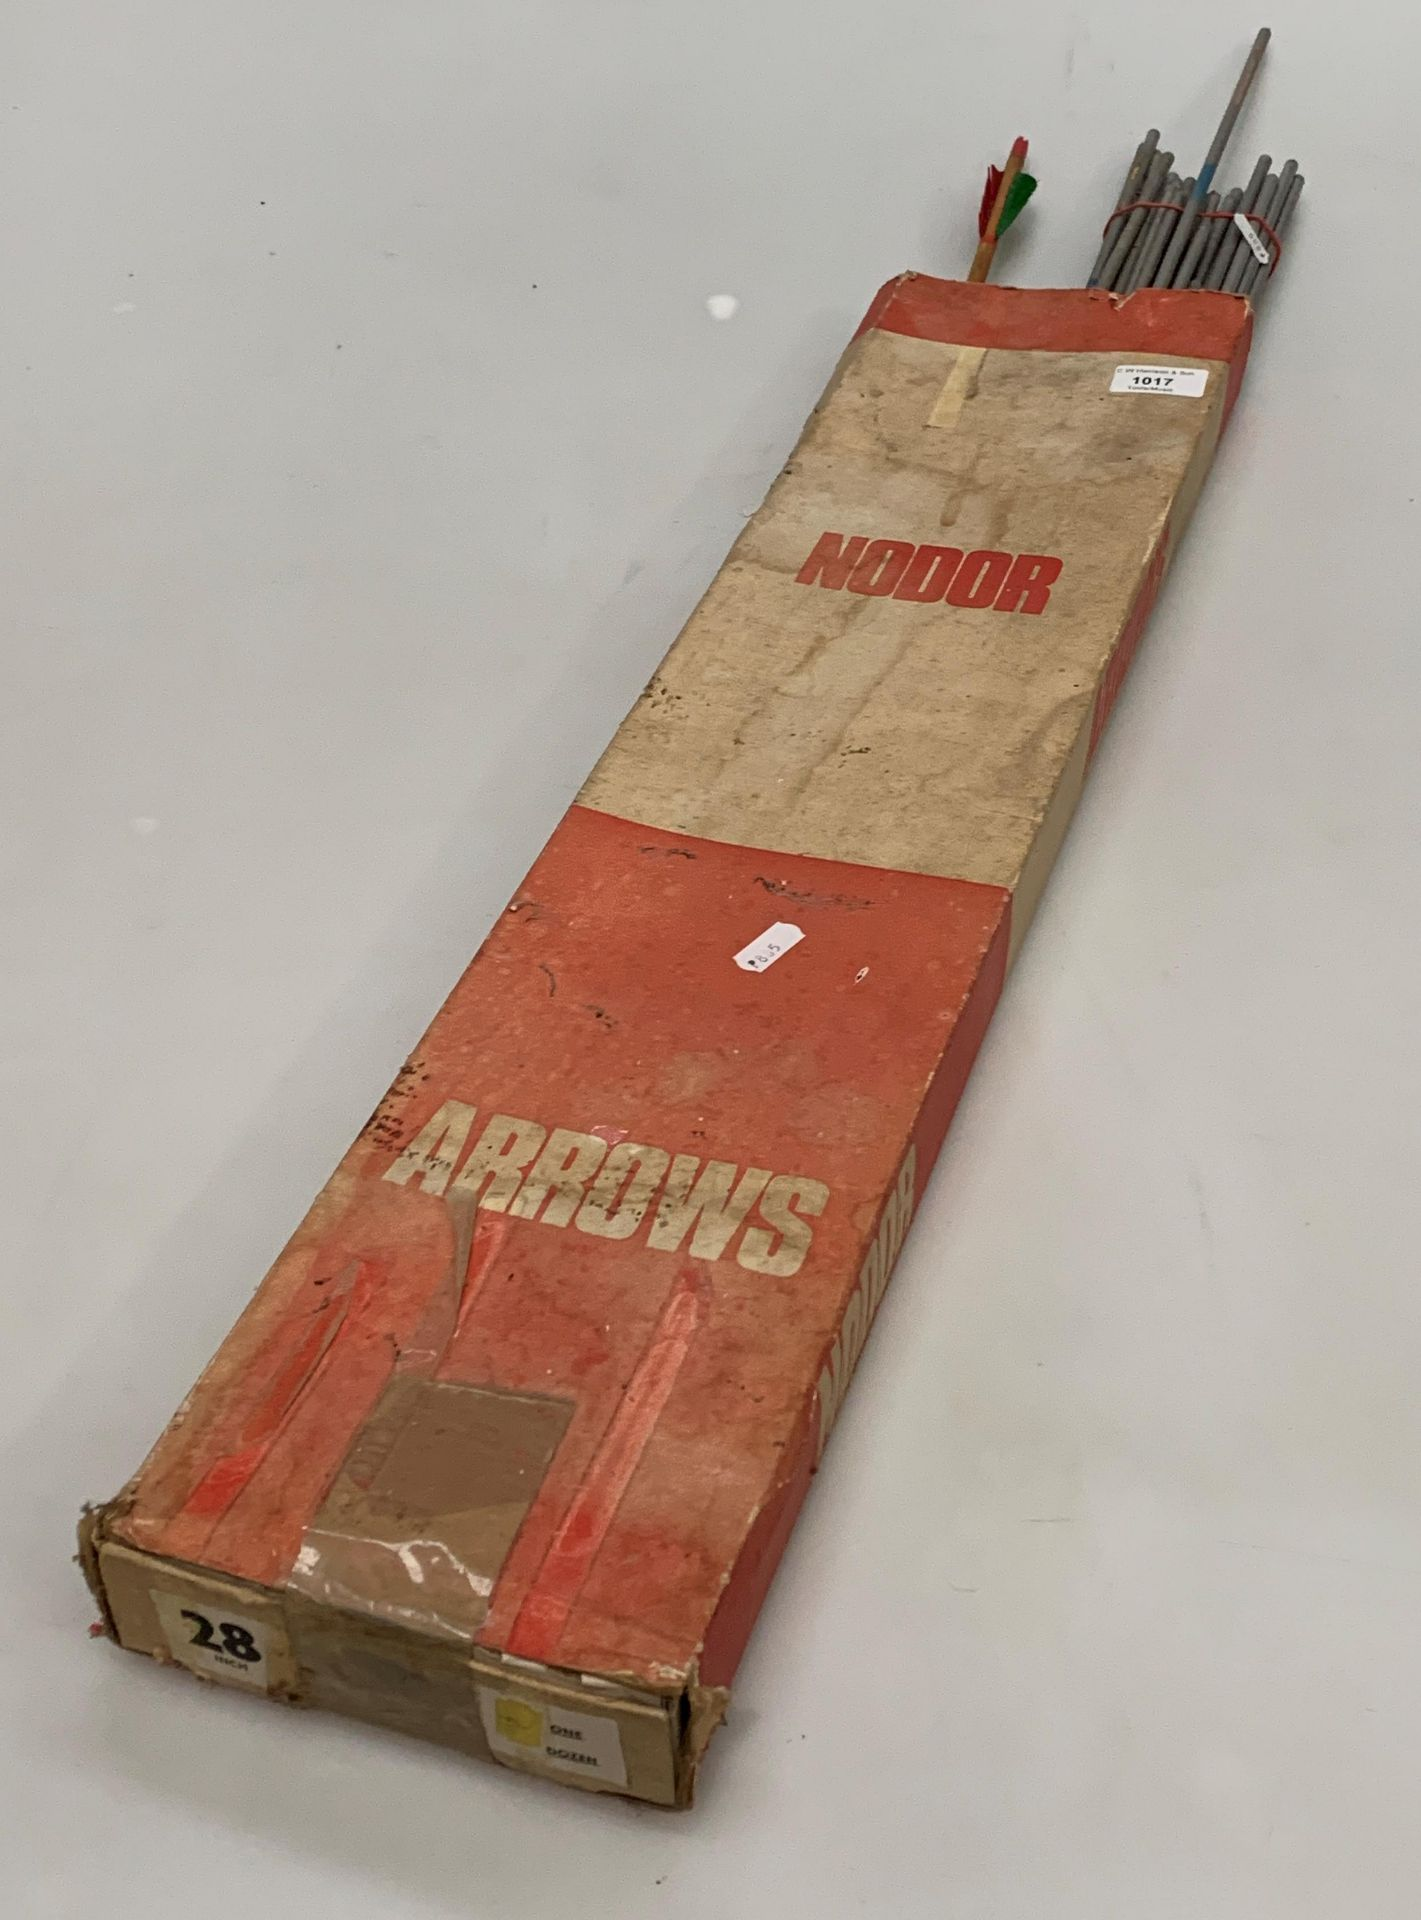 Contents to box - a quantity of Nodor and other Archery arrows and four various bows in a bag - Image 3 of 6